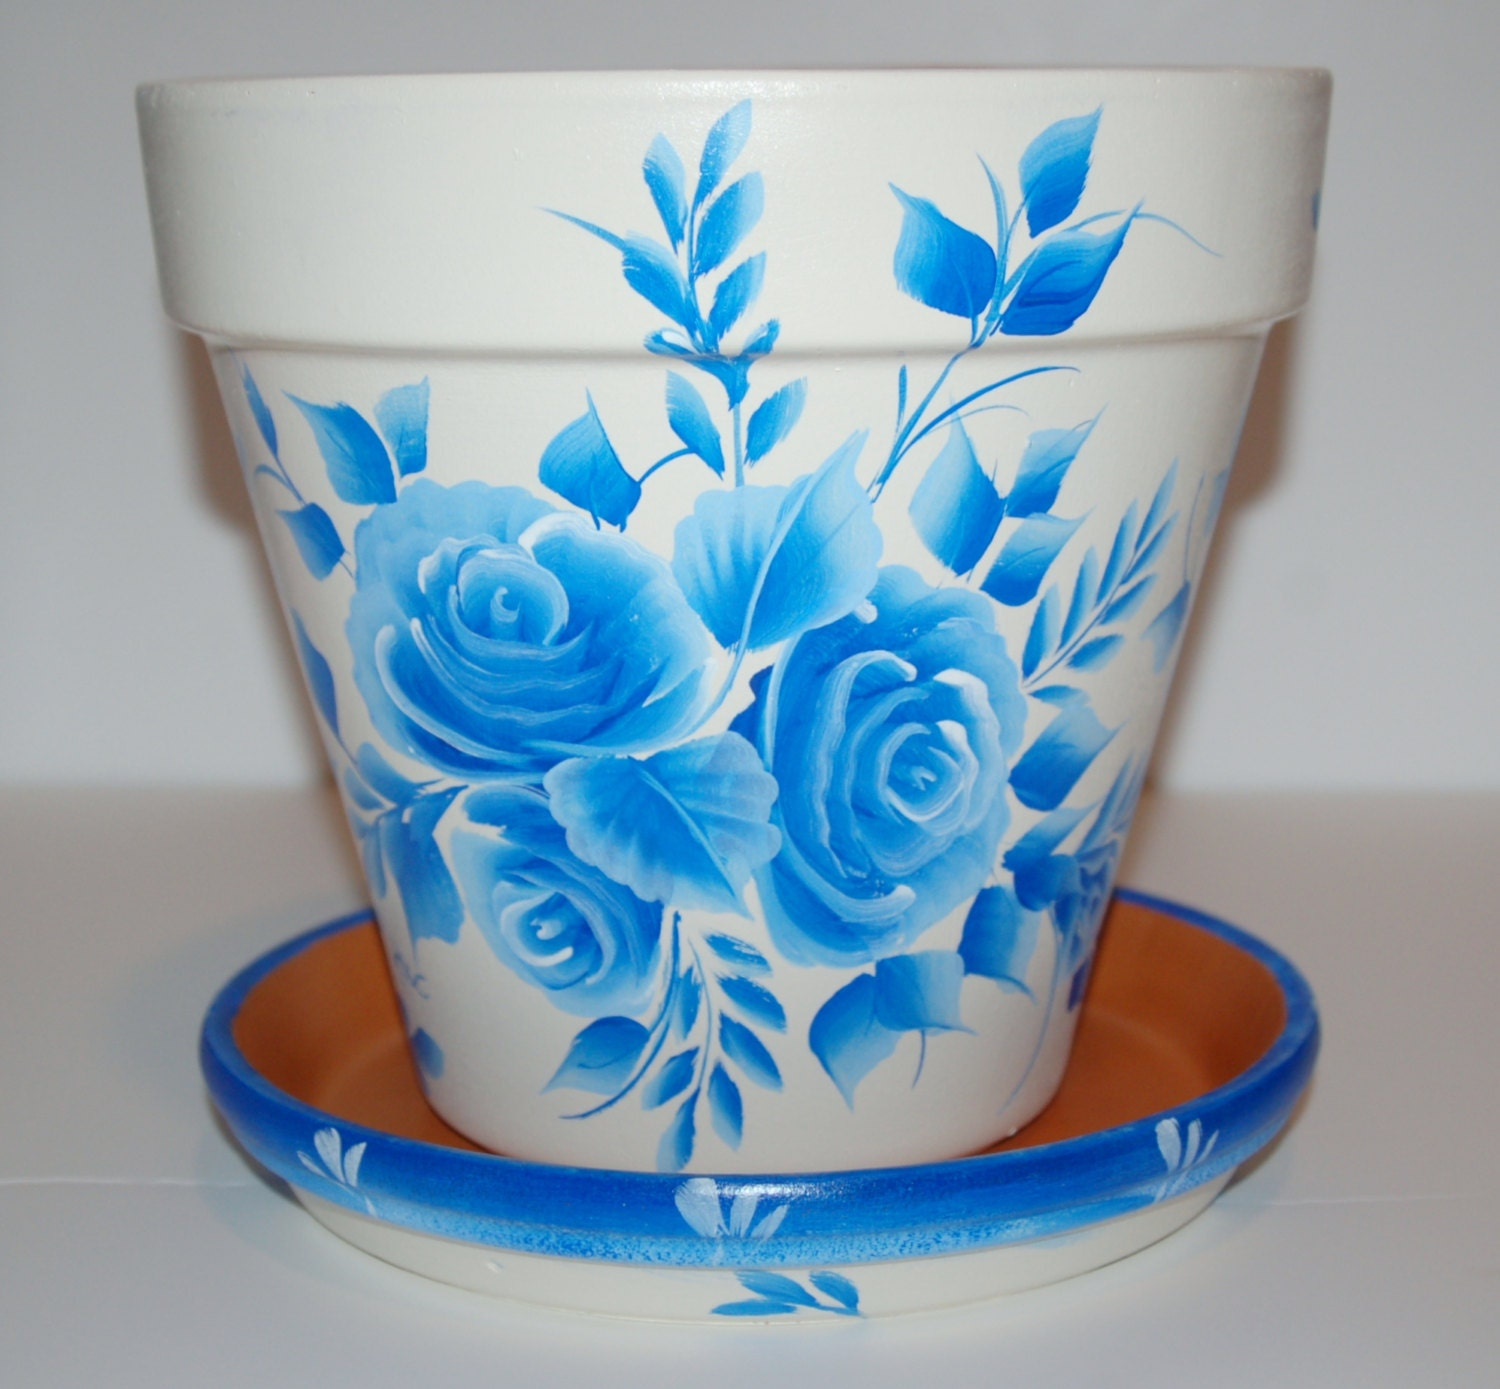 hand painted clay flower pot one stroke blue roses design 8